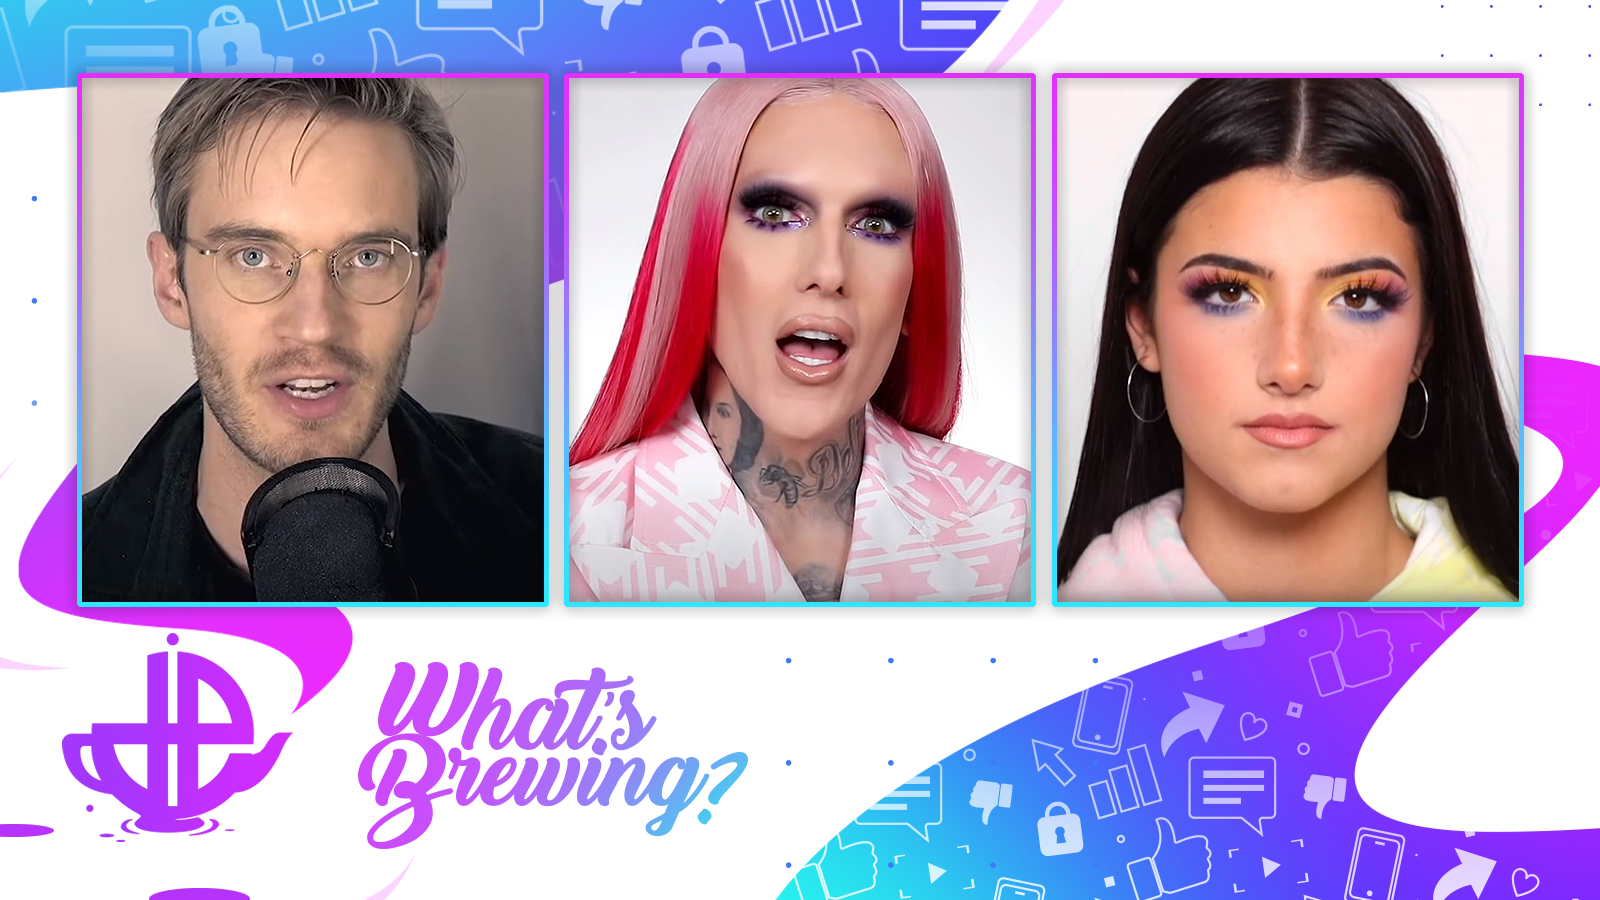 PewDiePie, Jeffree Star, and Charli D'Amelio are shown on the What's Brewing logo.